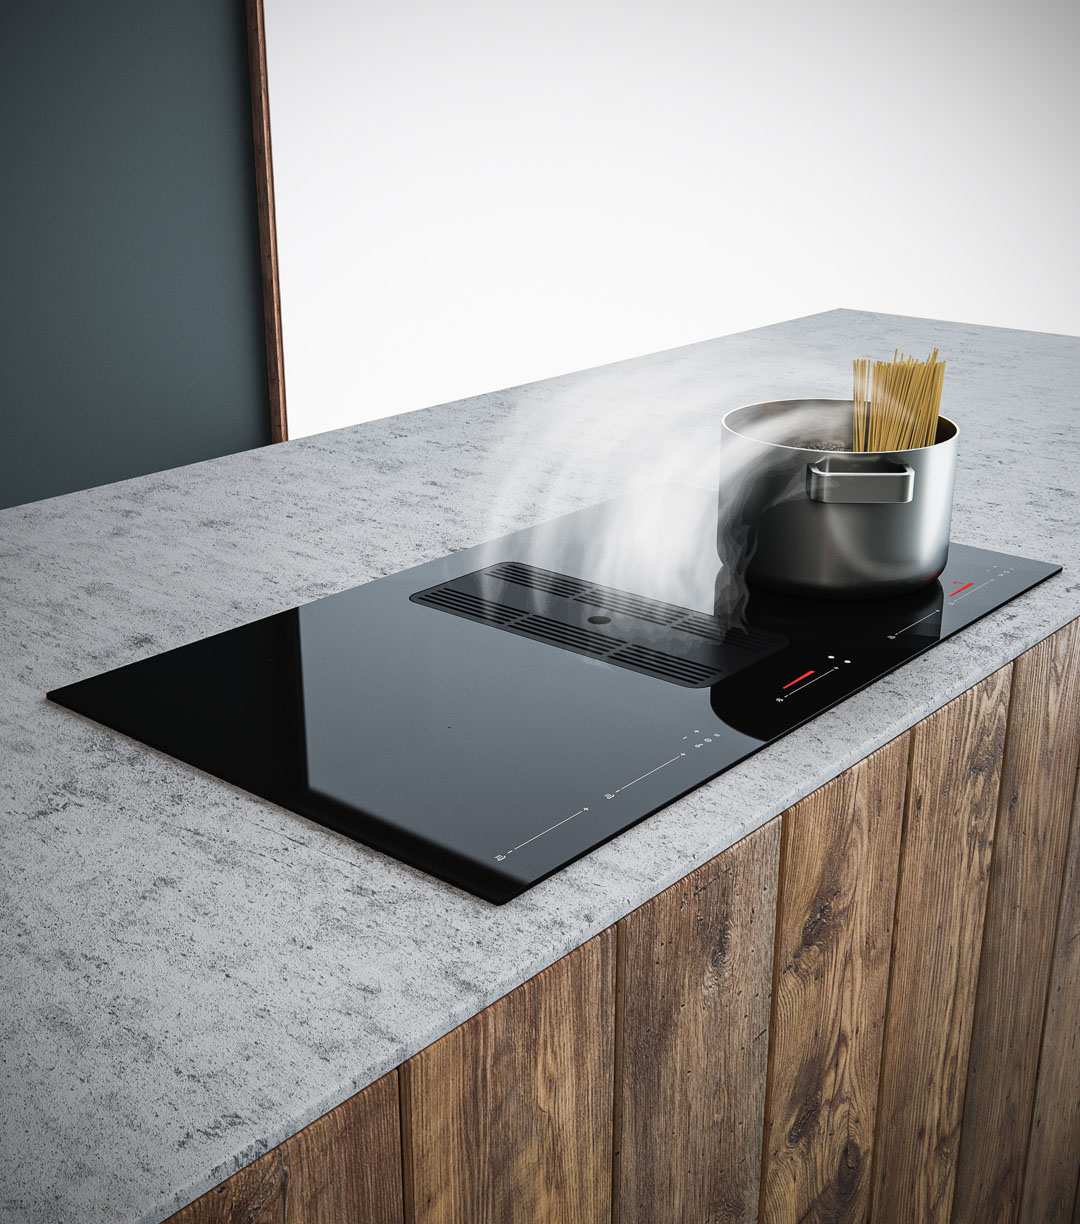 A downdraft rangehood that offers integrated excellence